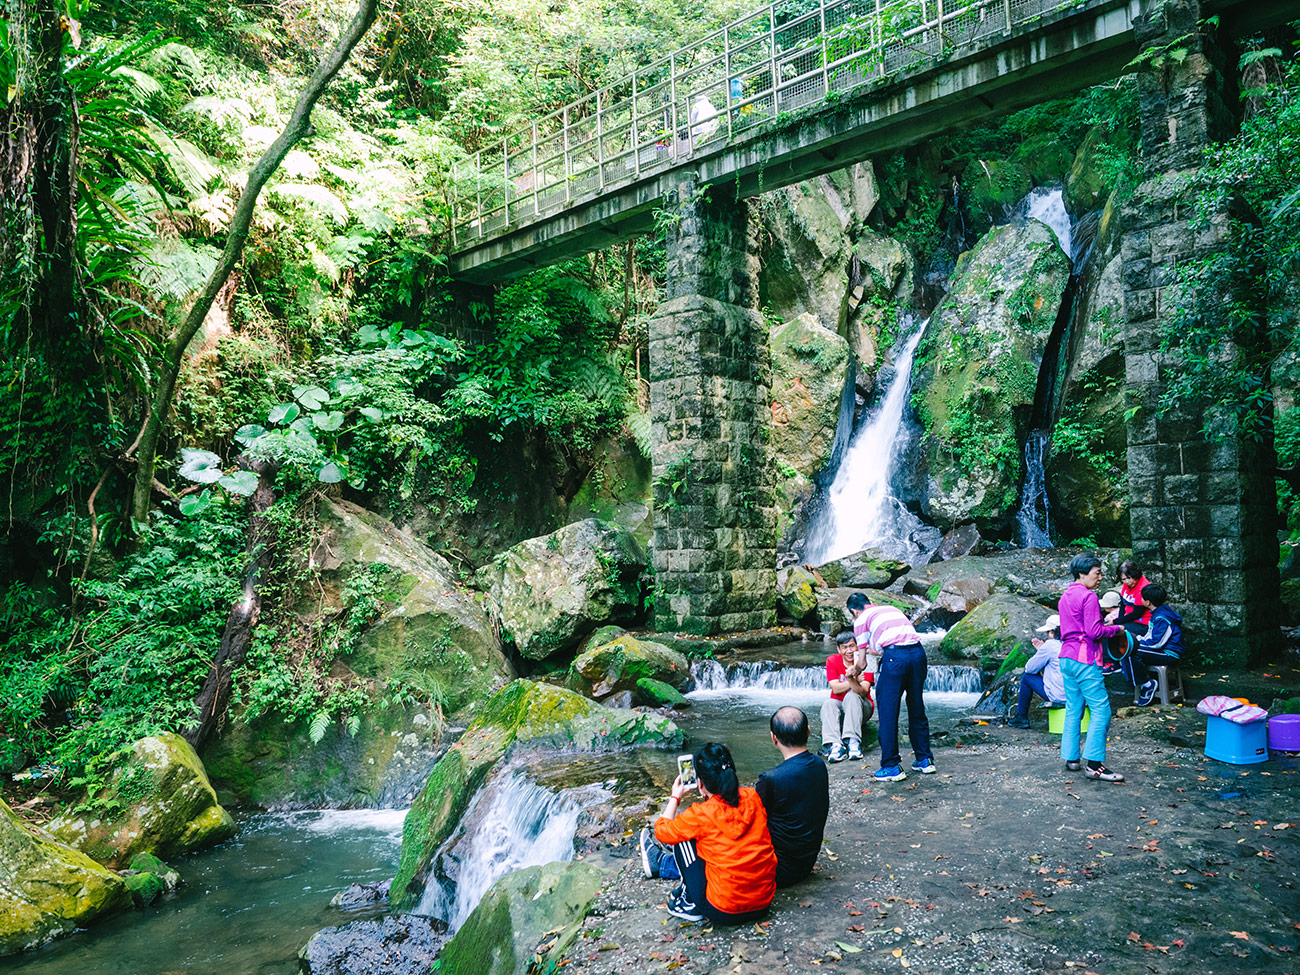 Yangmingshan - Enjoying the waterfall